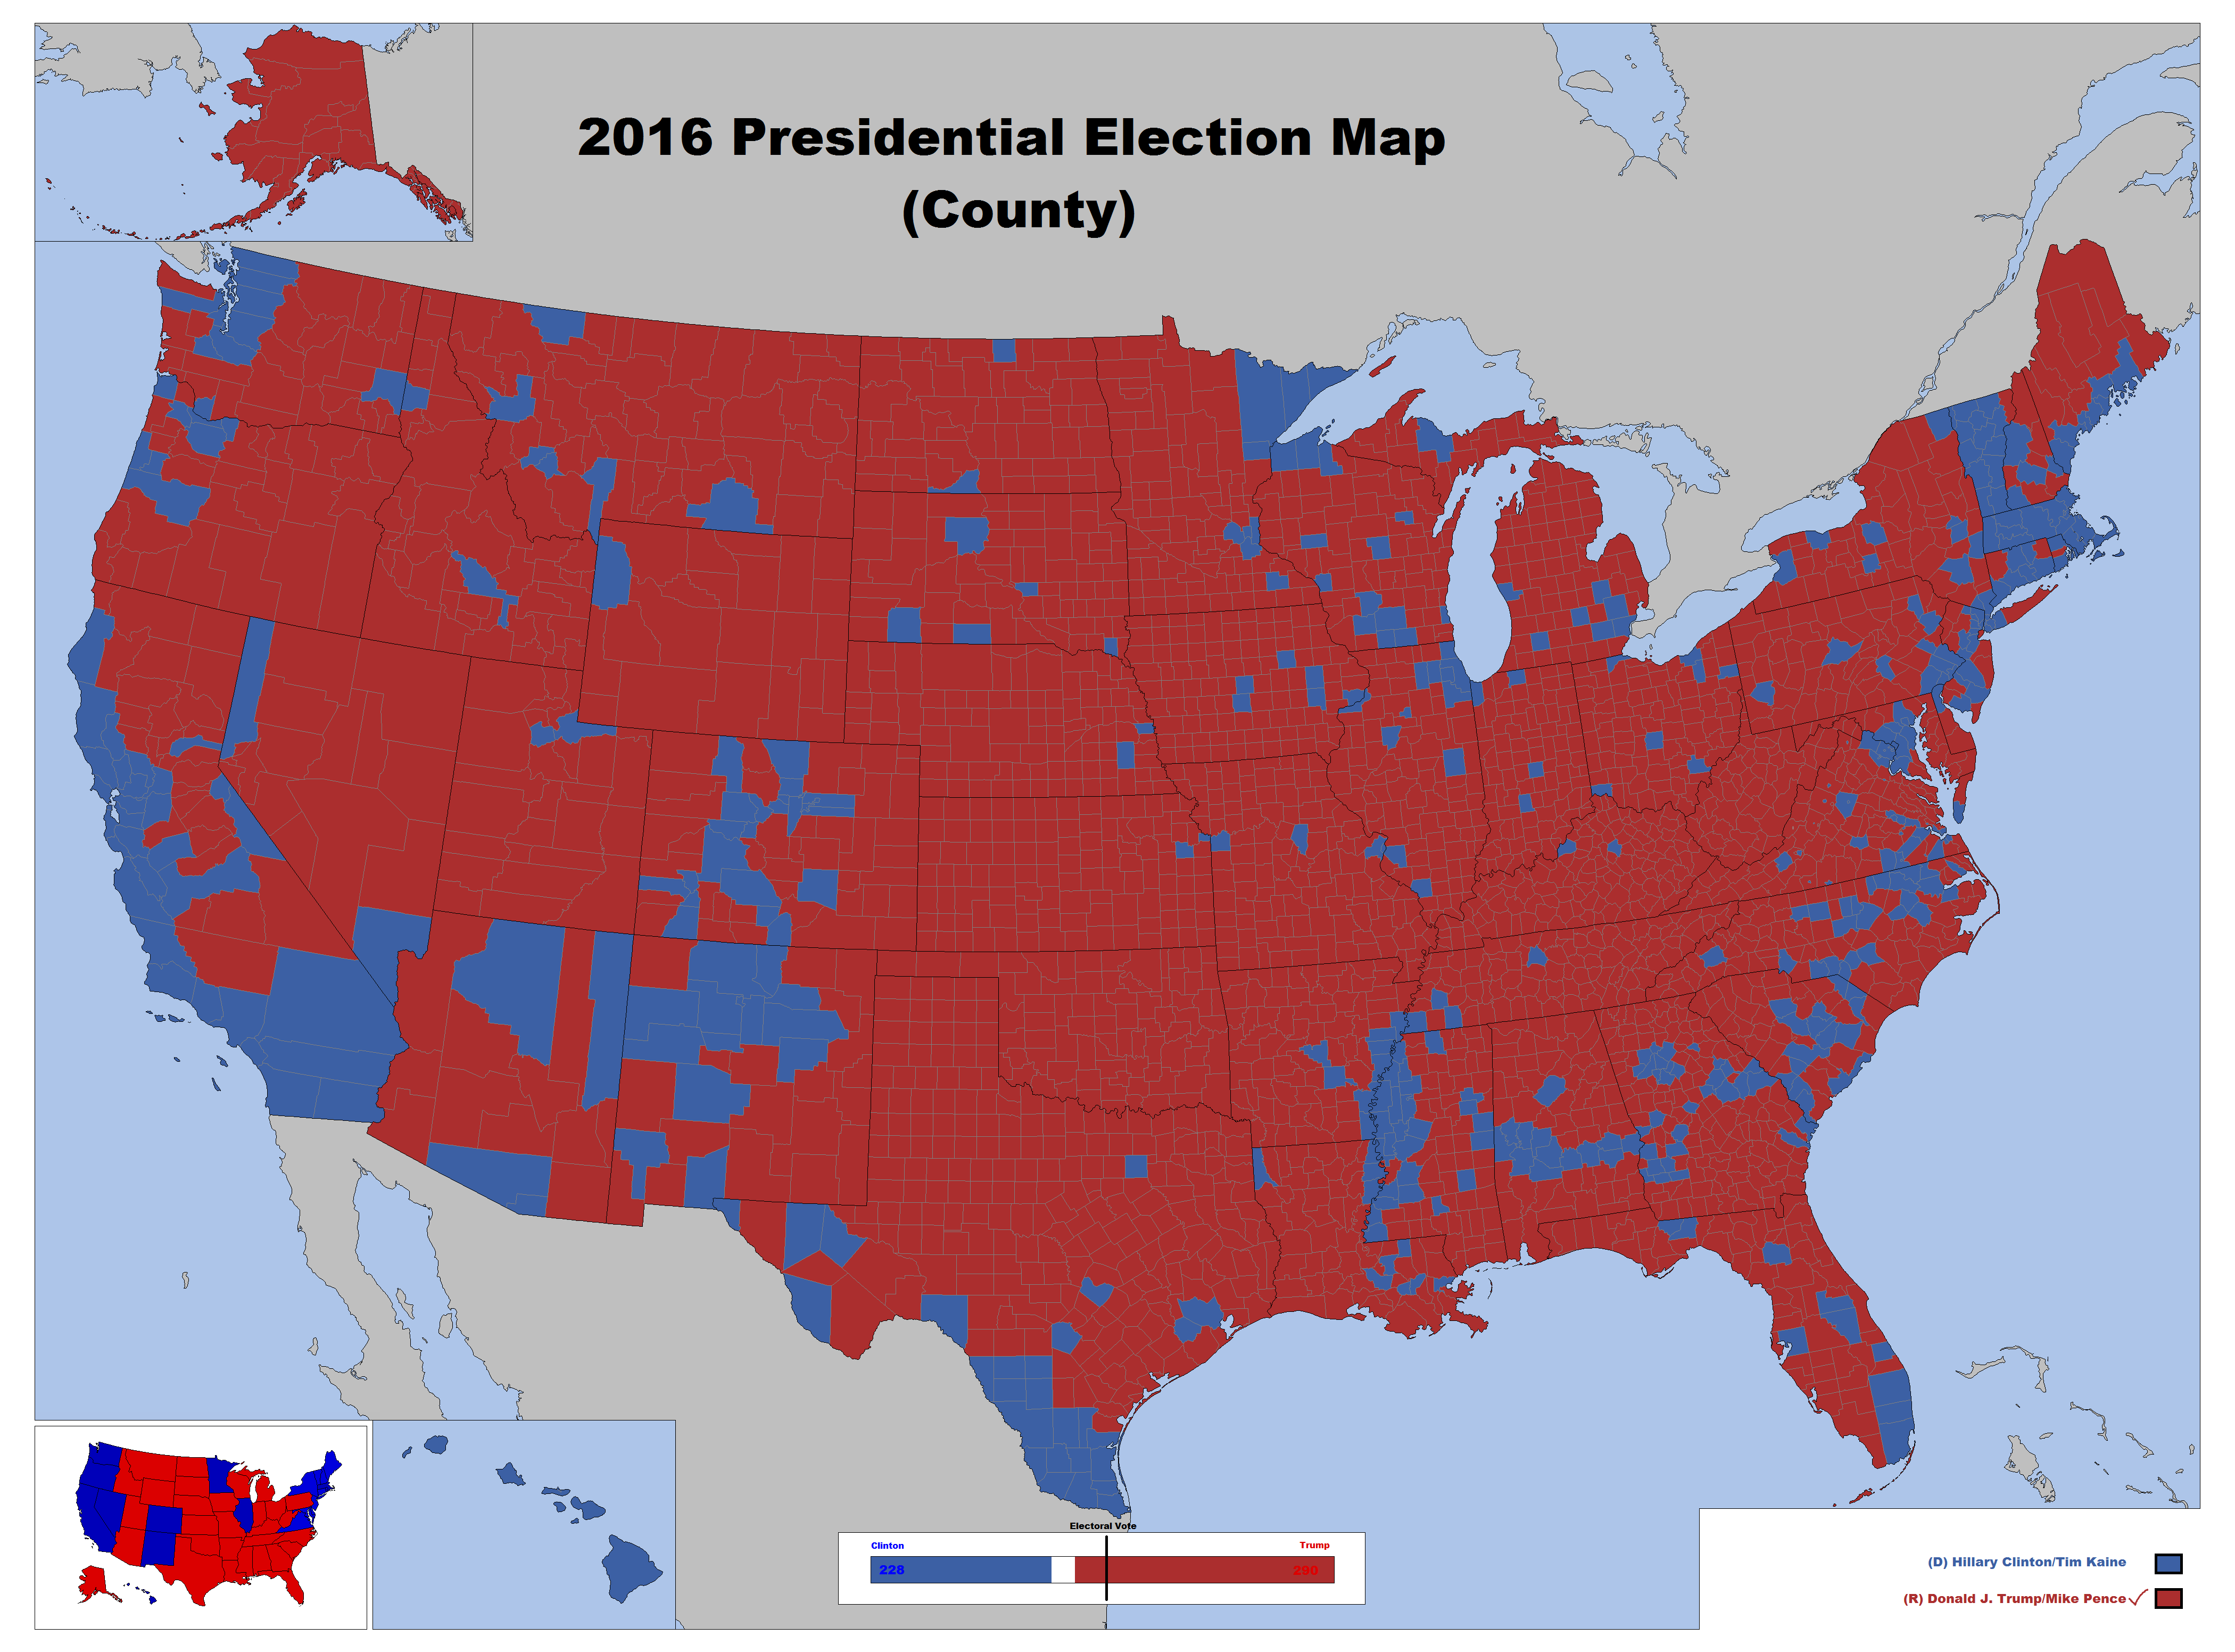 2016 Presidential Election Map County by LouisTheFox on DeviantArt